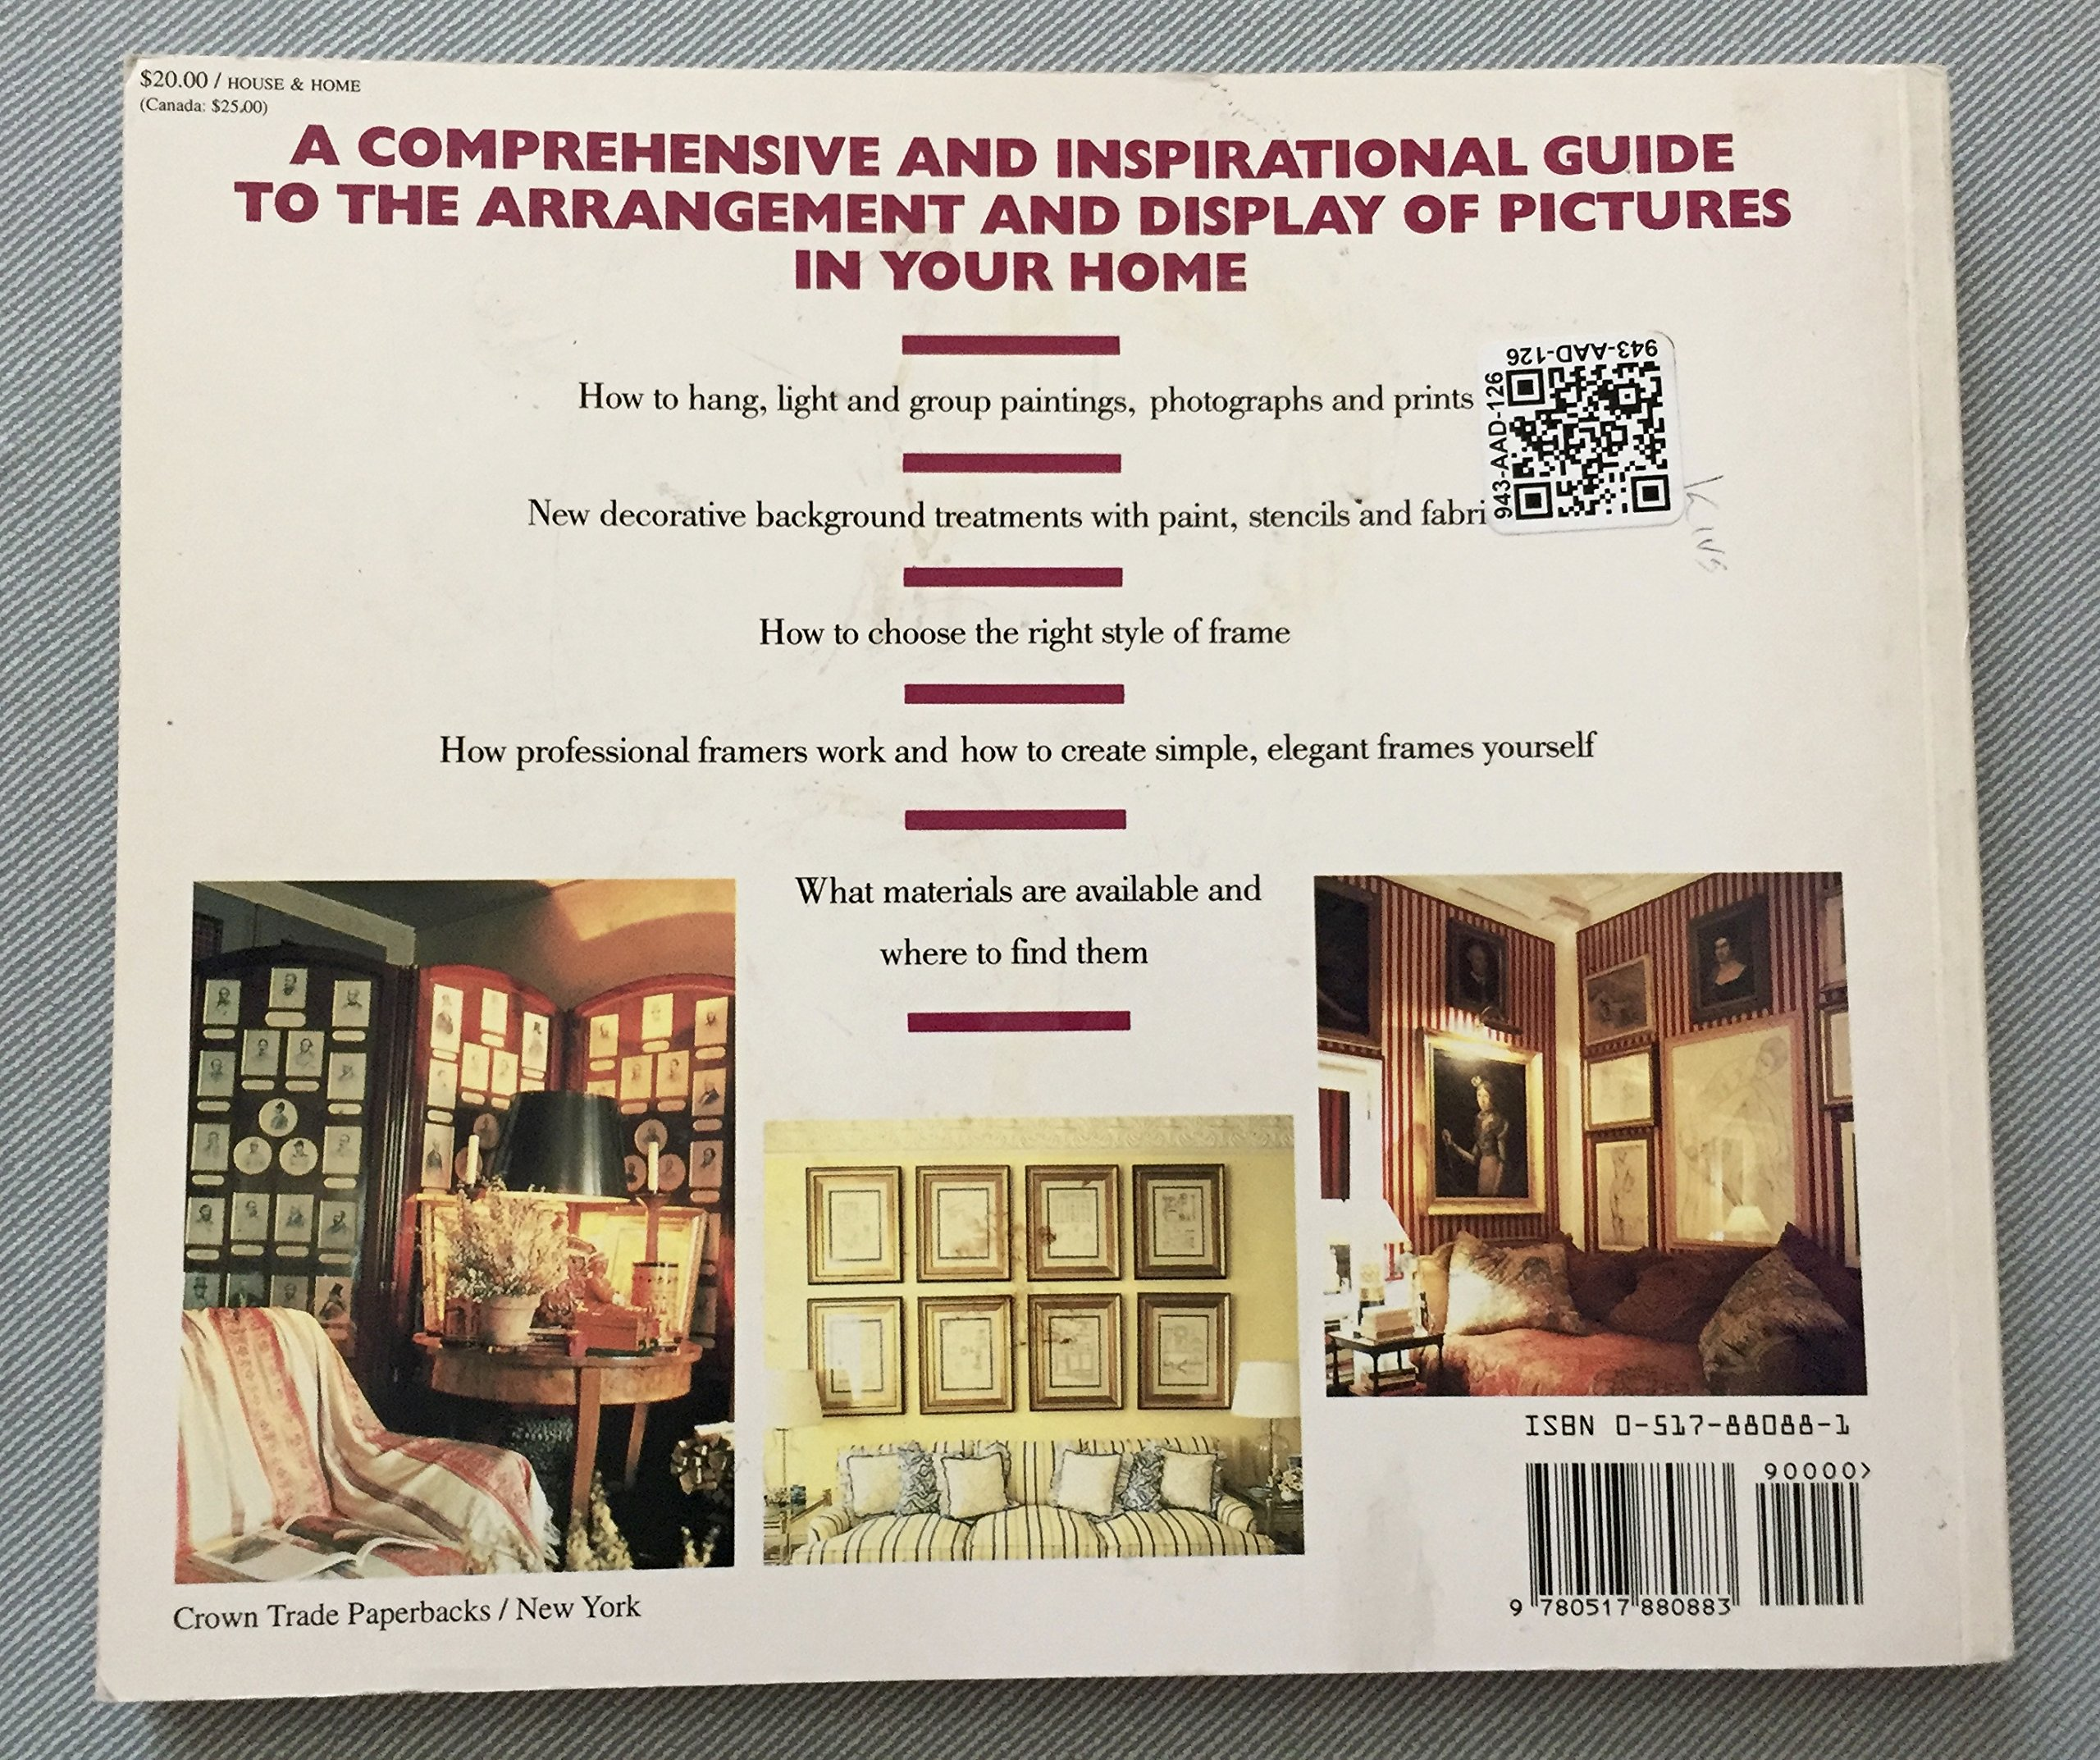 Displaying pictures and photographs a complete guide to framing displaying pictures and photographs a complete guide to framing arranging and lighting paintings prints and photo graphs caroline clifton mogg solutioingenieria Image collections